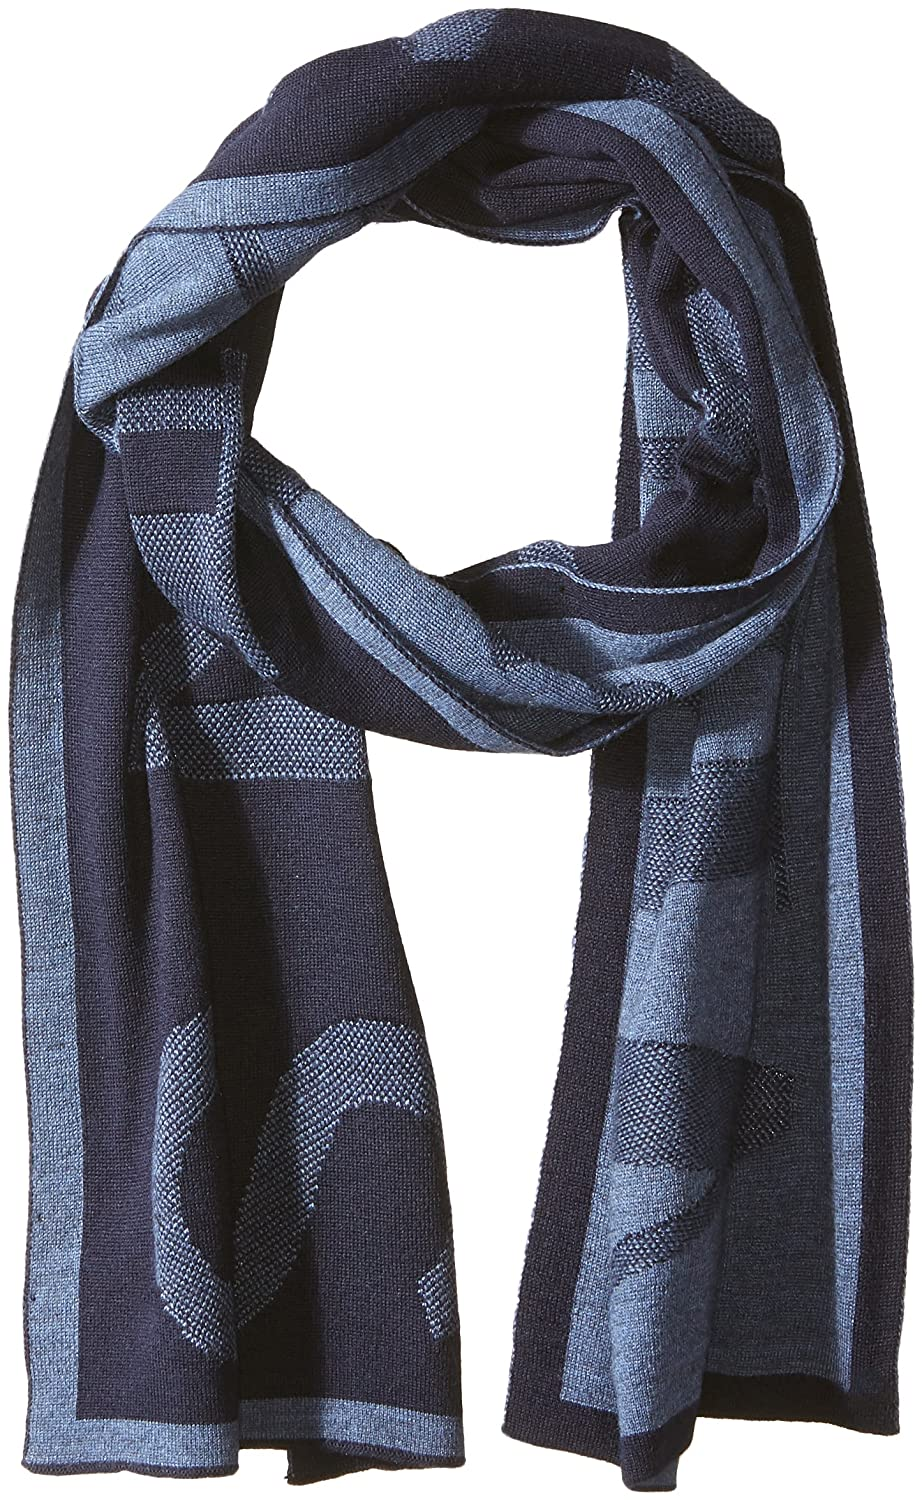 Armani Exchange Men's Woolblended Knit Scarf with Large Print Black/Grey ONE Size 9341067A715